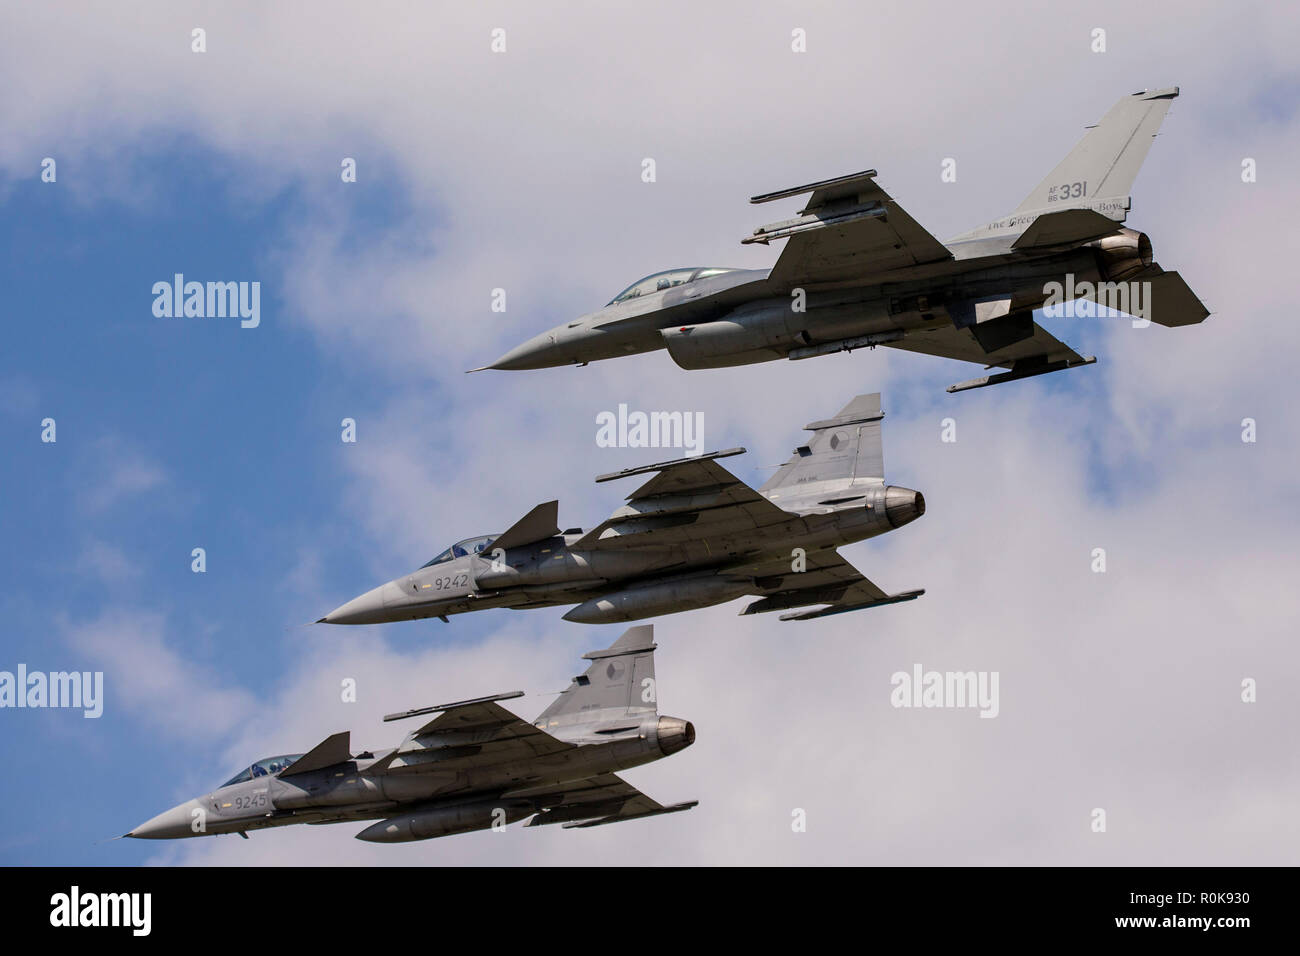 JAS-39 Gripen aircraft of the Czech Air Force fly in